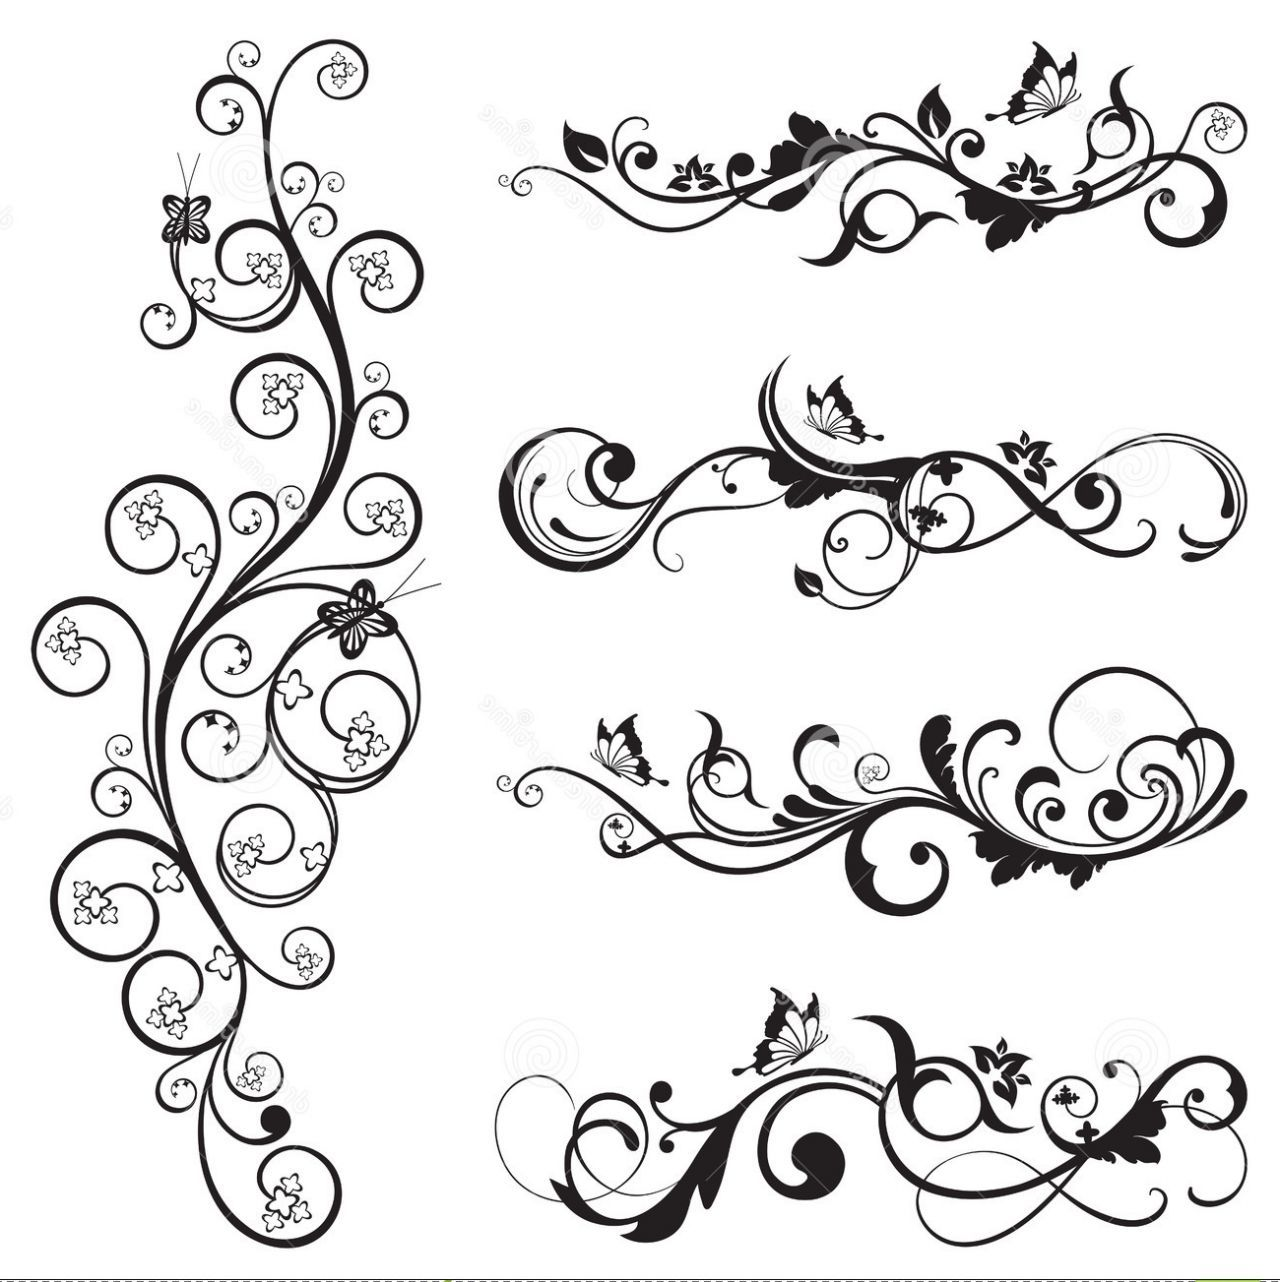 Flower Tattoo With Vines: Vintage Flower Vine Tattoo Collection Of Wintage Floral